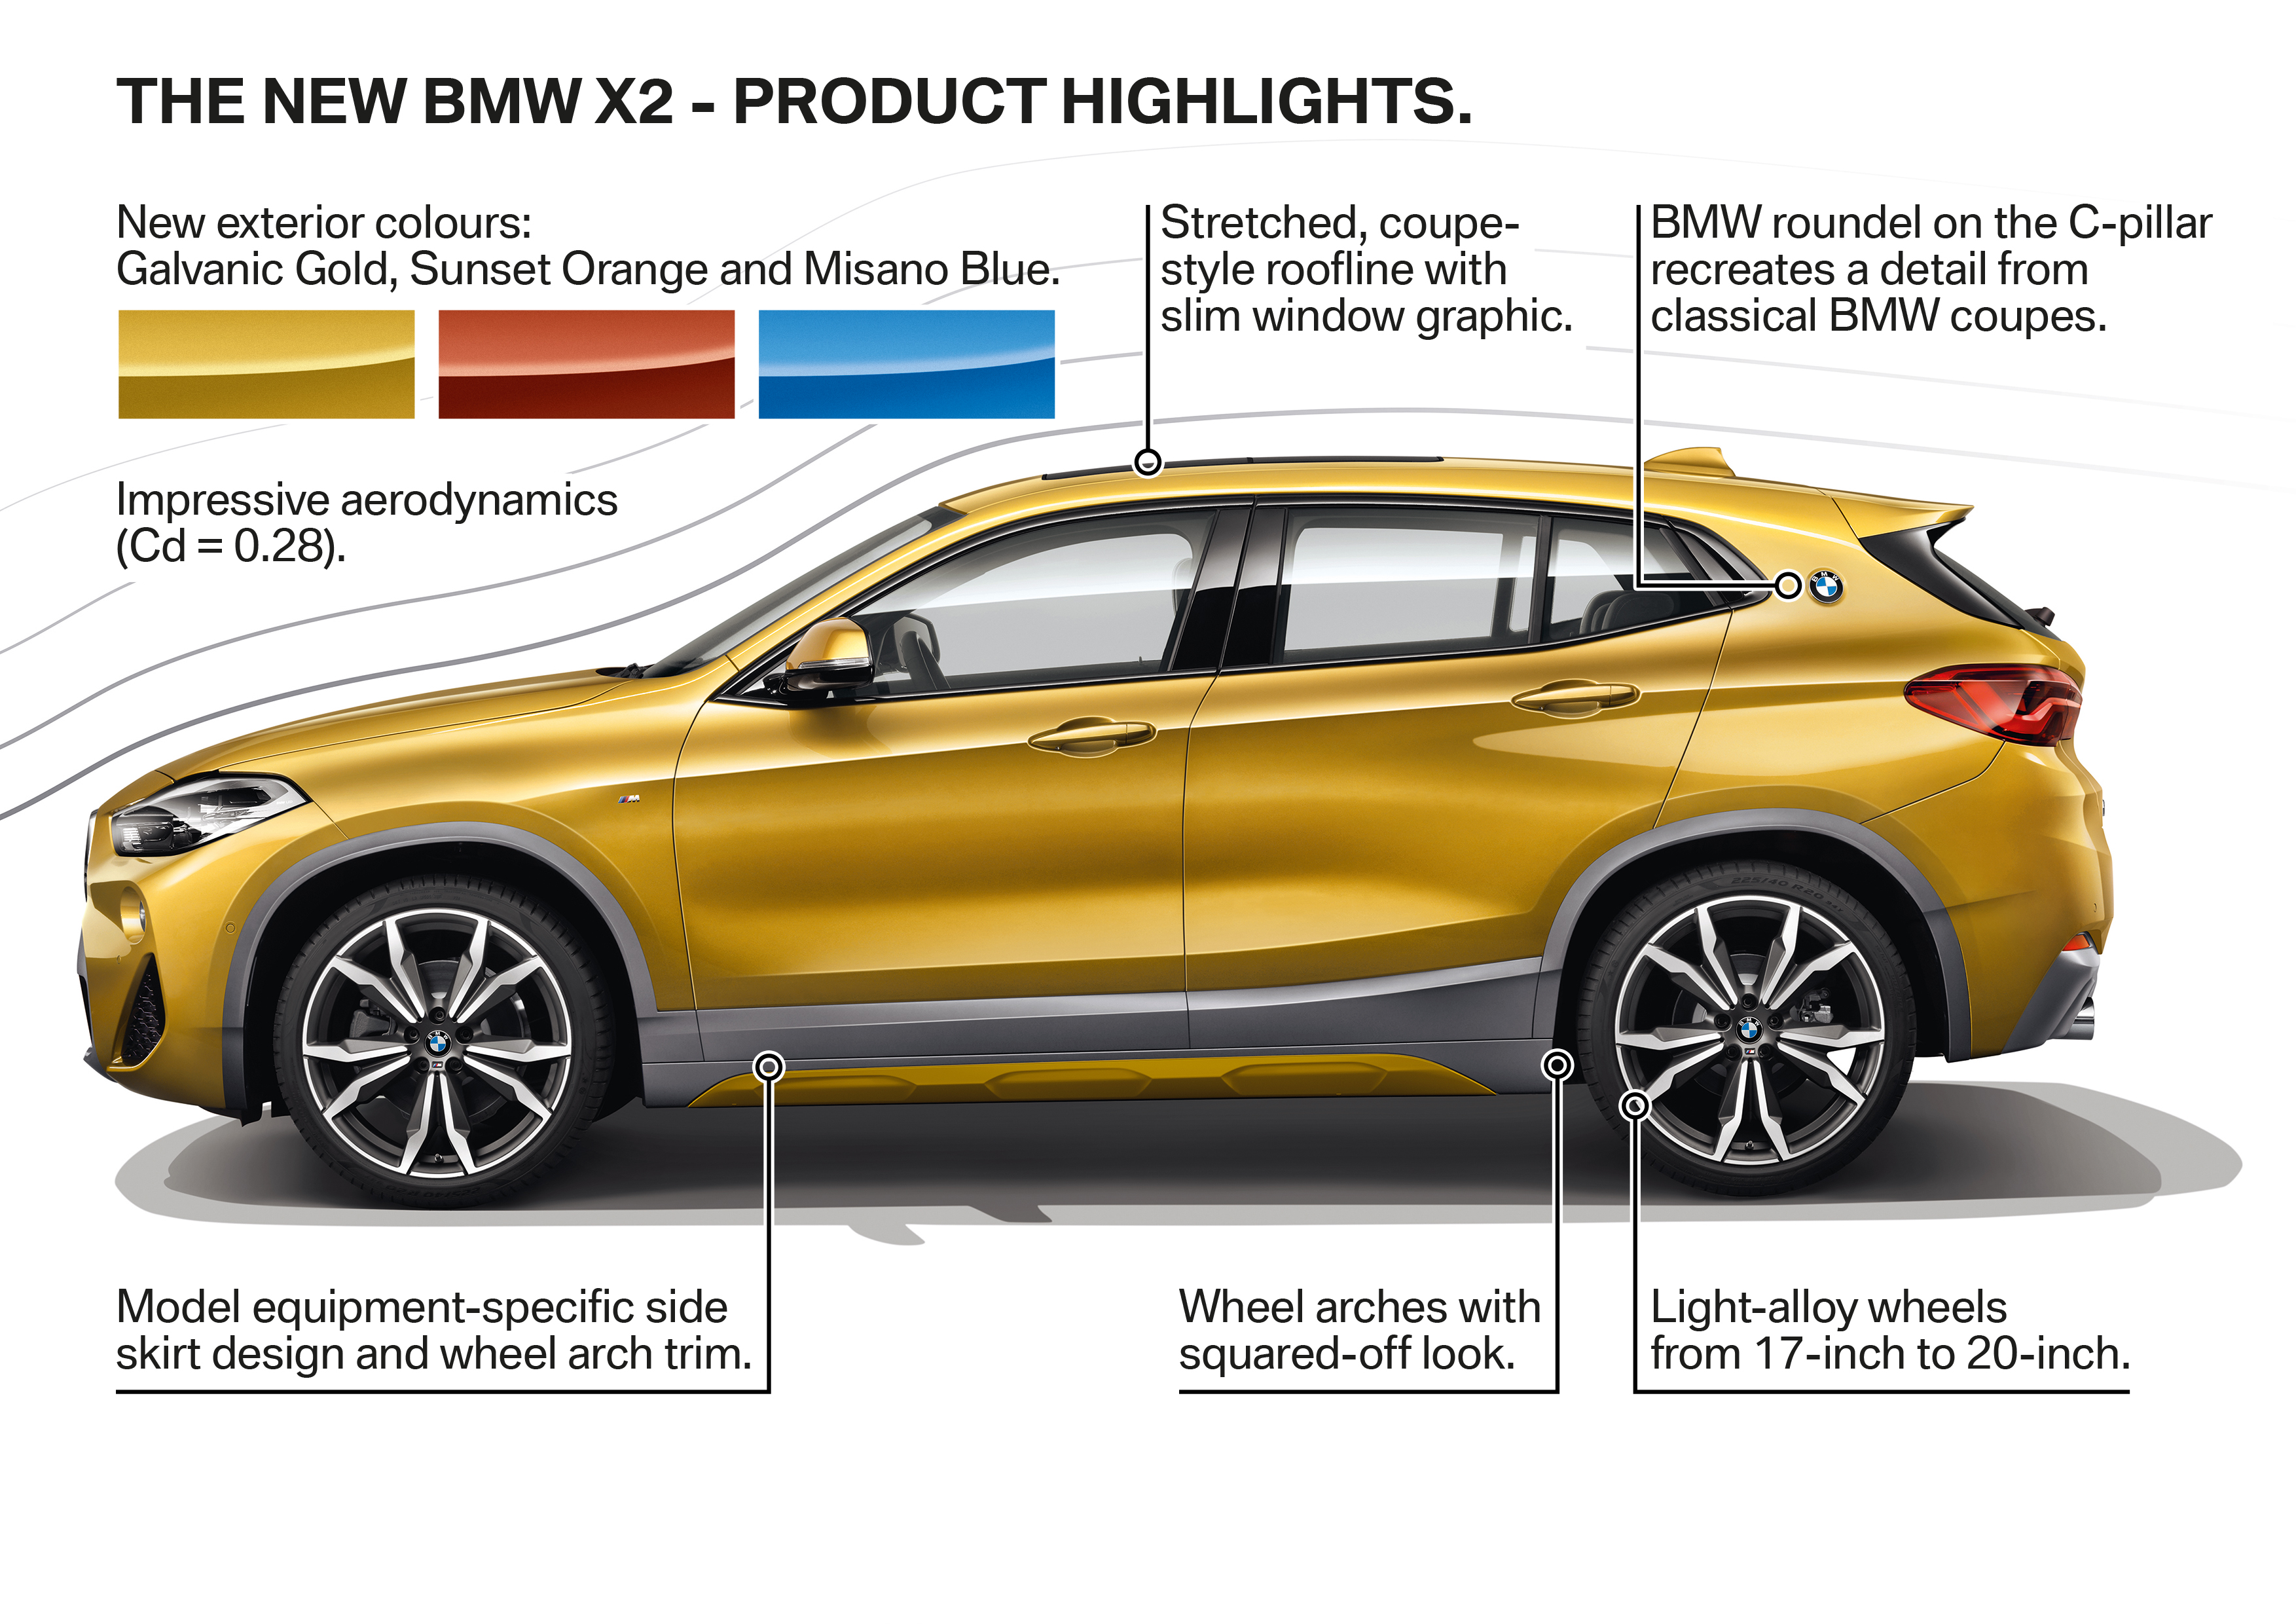 f39 bmw x2 unveiled with new m sport x package paul tan image 729027. Black Bedroom Furniture Sets. Home Design Ideas